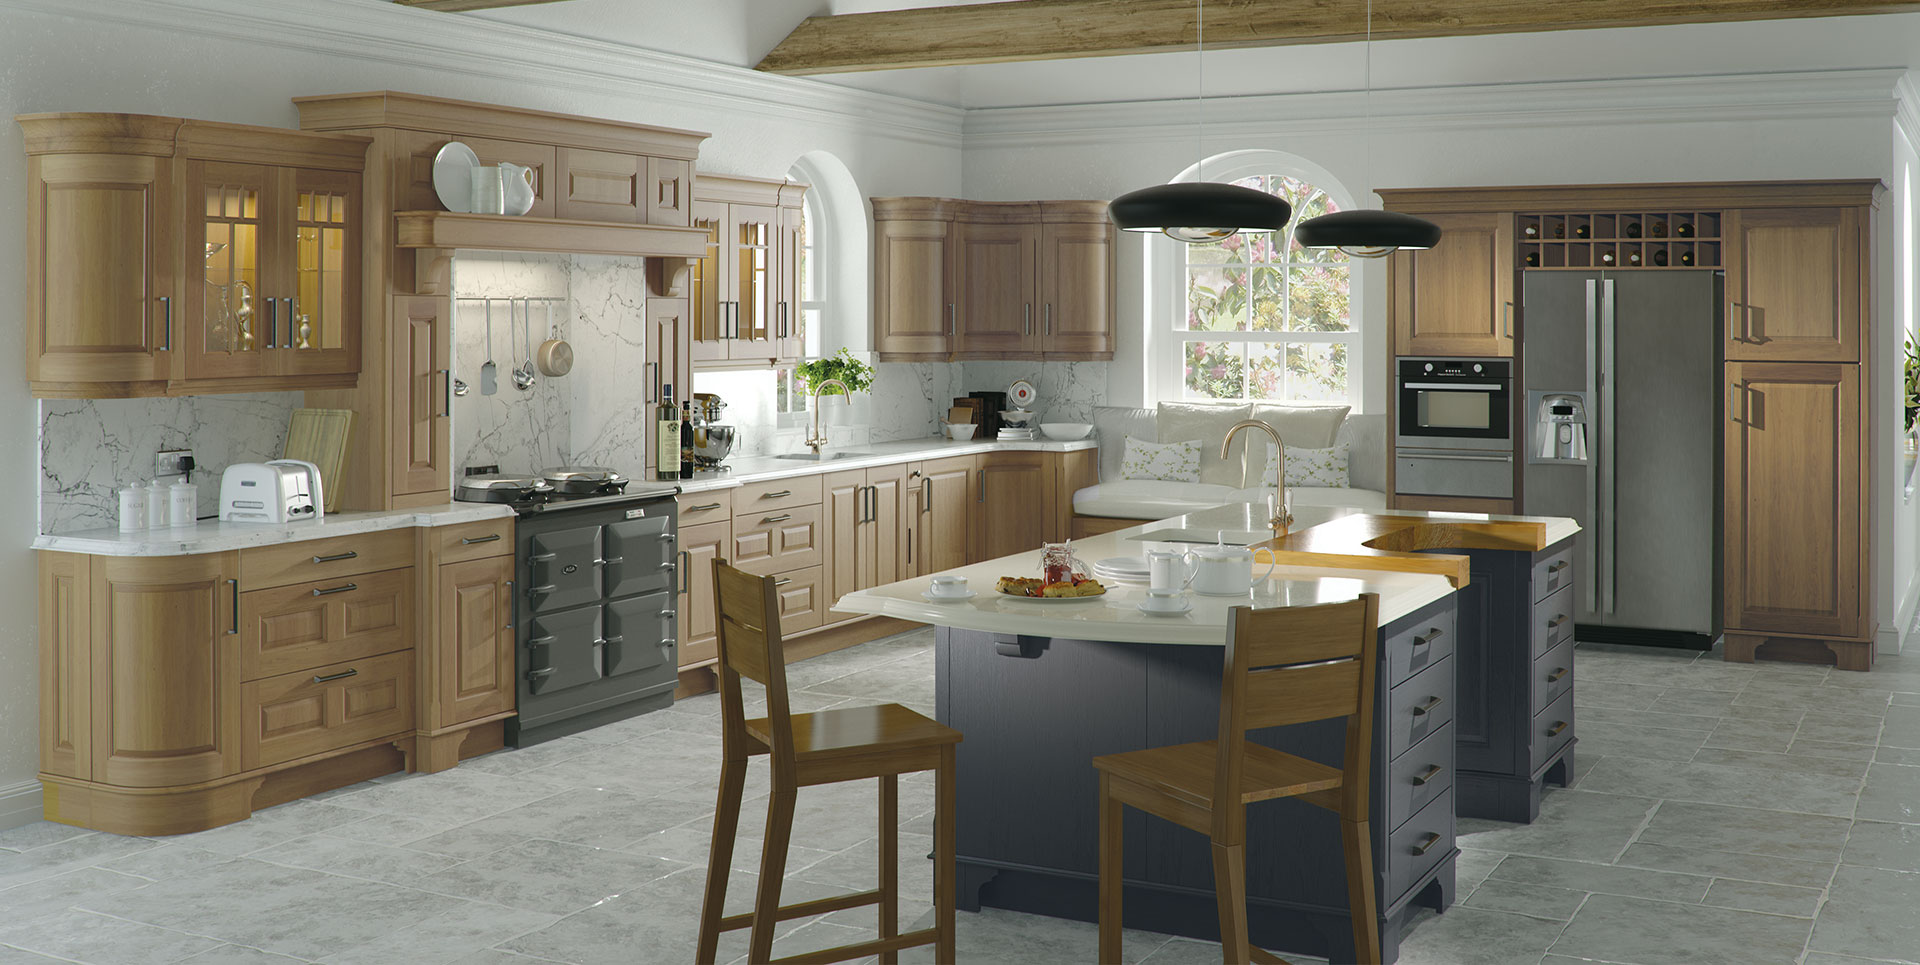 Traditional kitchens karl kavanagh furniture for Kitchen cabinets ireland